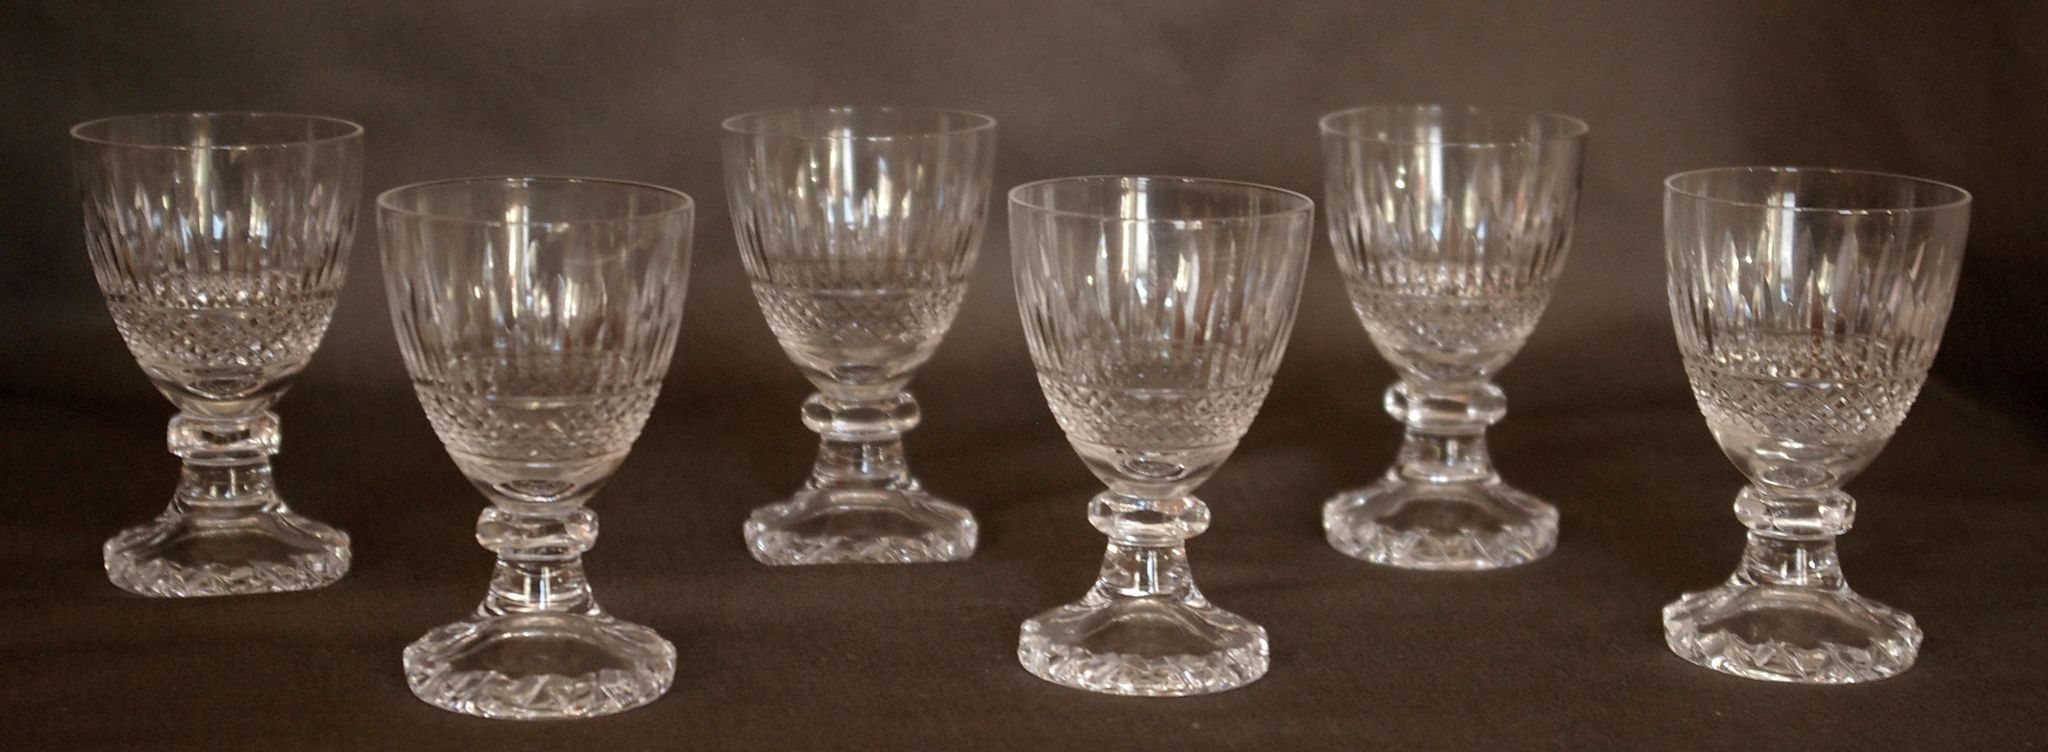 6 verres a liqueur daum france photo de antiquites mes fa ences mes merveilles la boutique. Black Bedroom Furniture Sets. Home Design Ideas